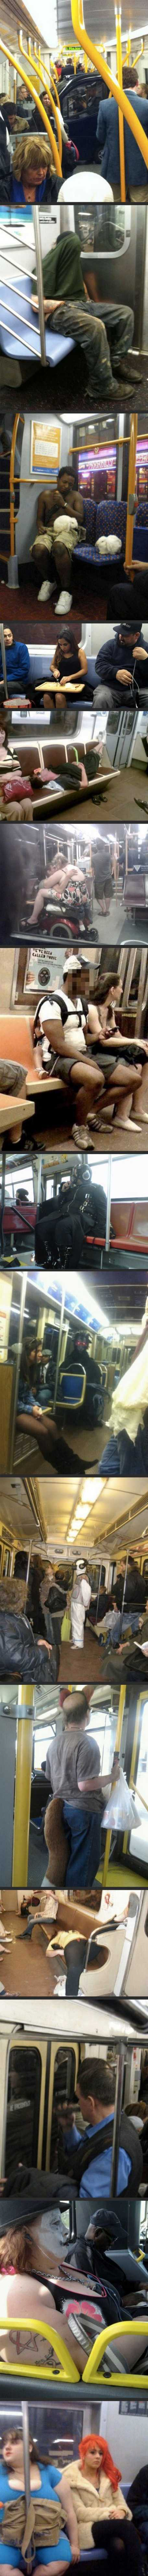 Only On Public Transport